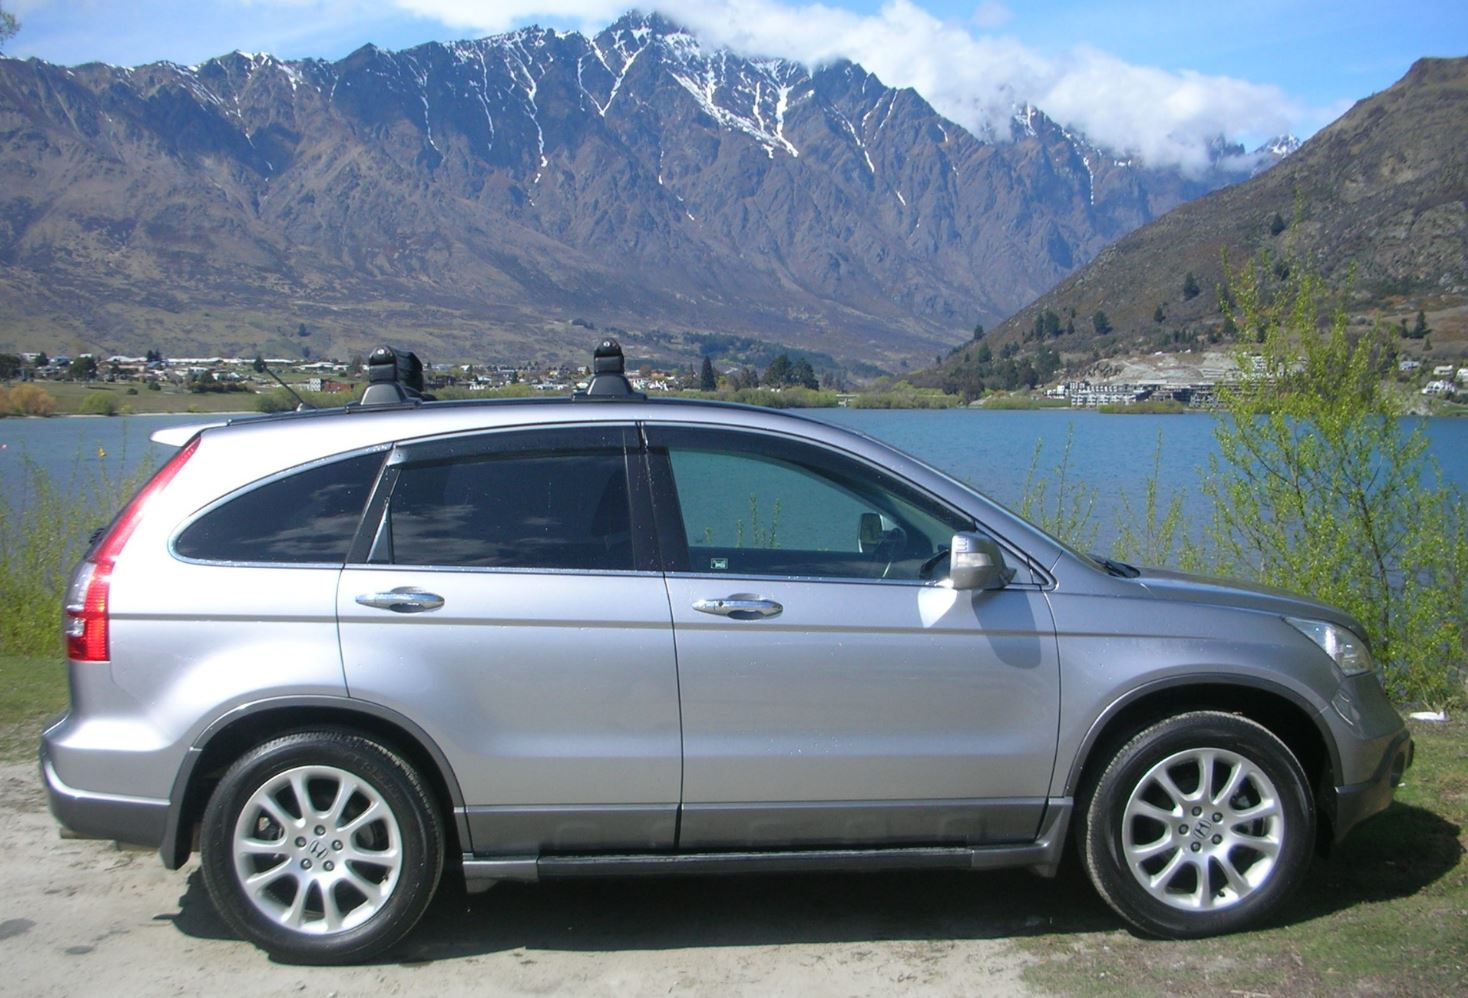 Rental Car Business for Sale Queenstown